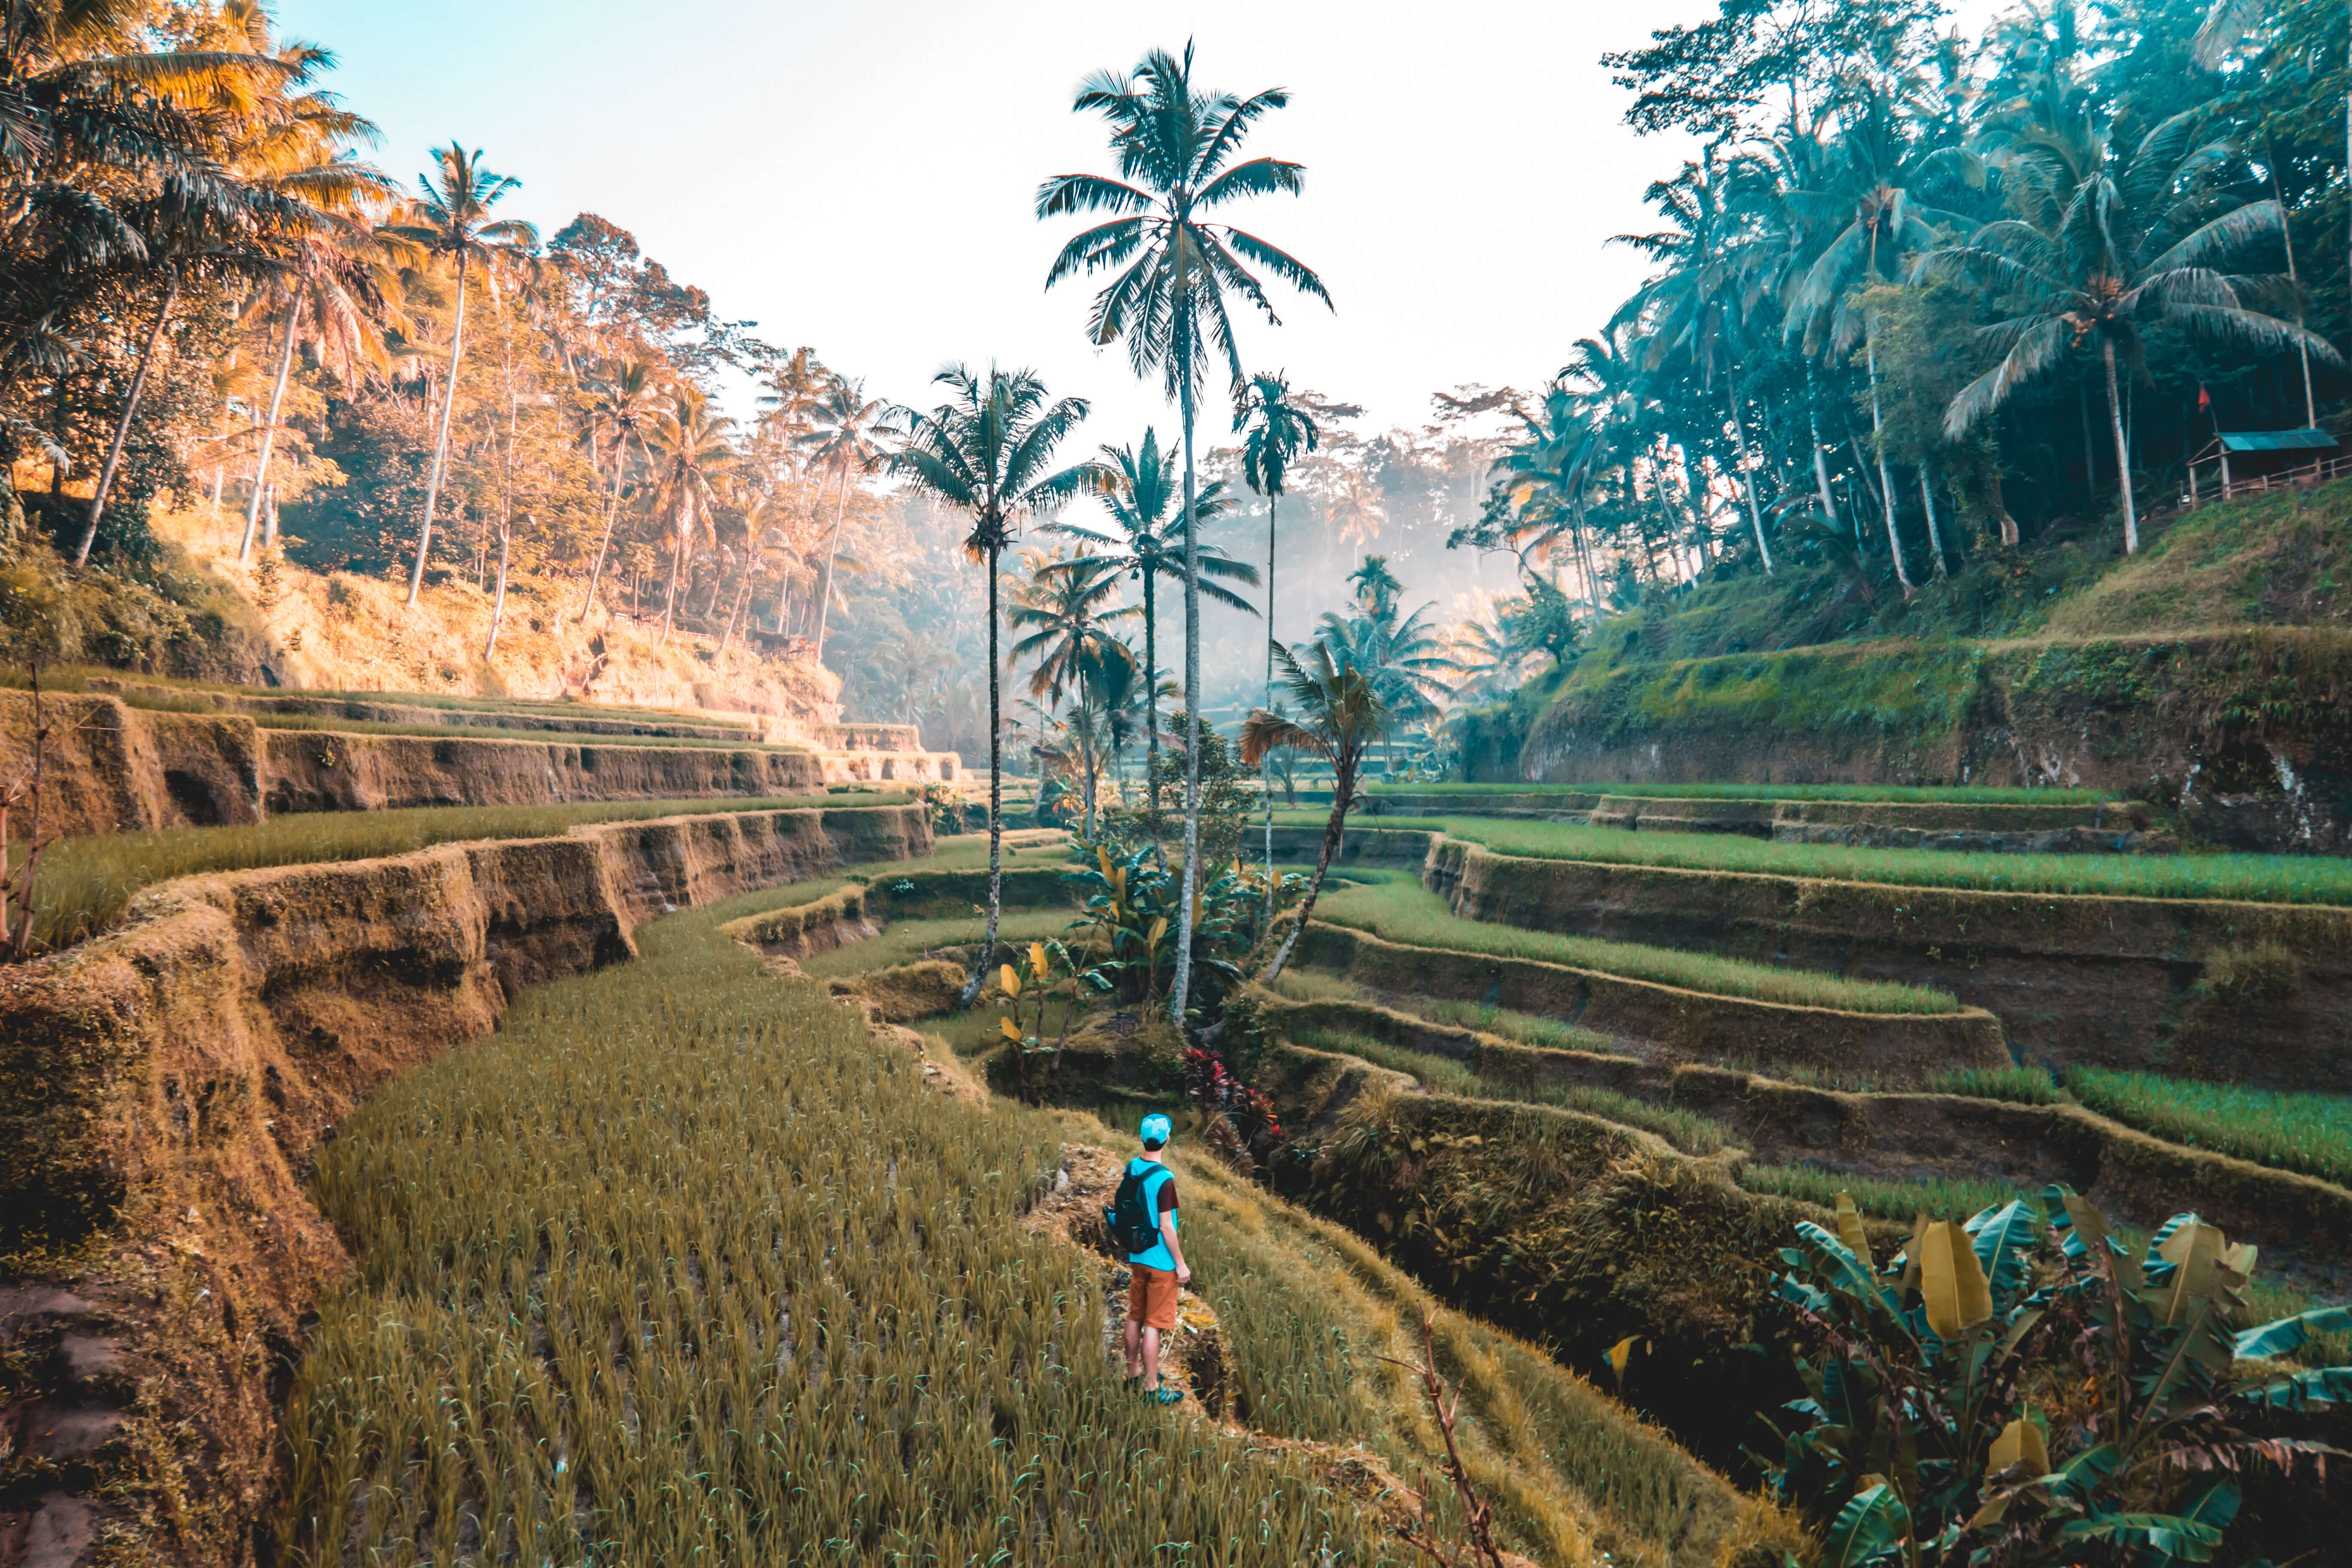 10 Instagram pictures that will make you want to visit Indonesia